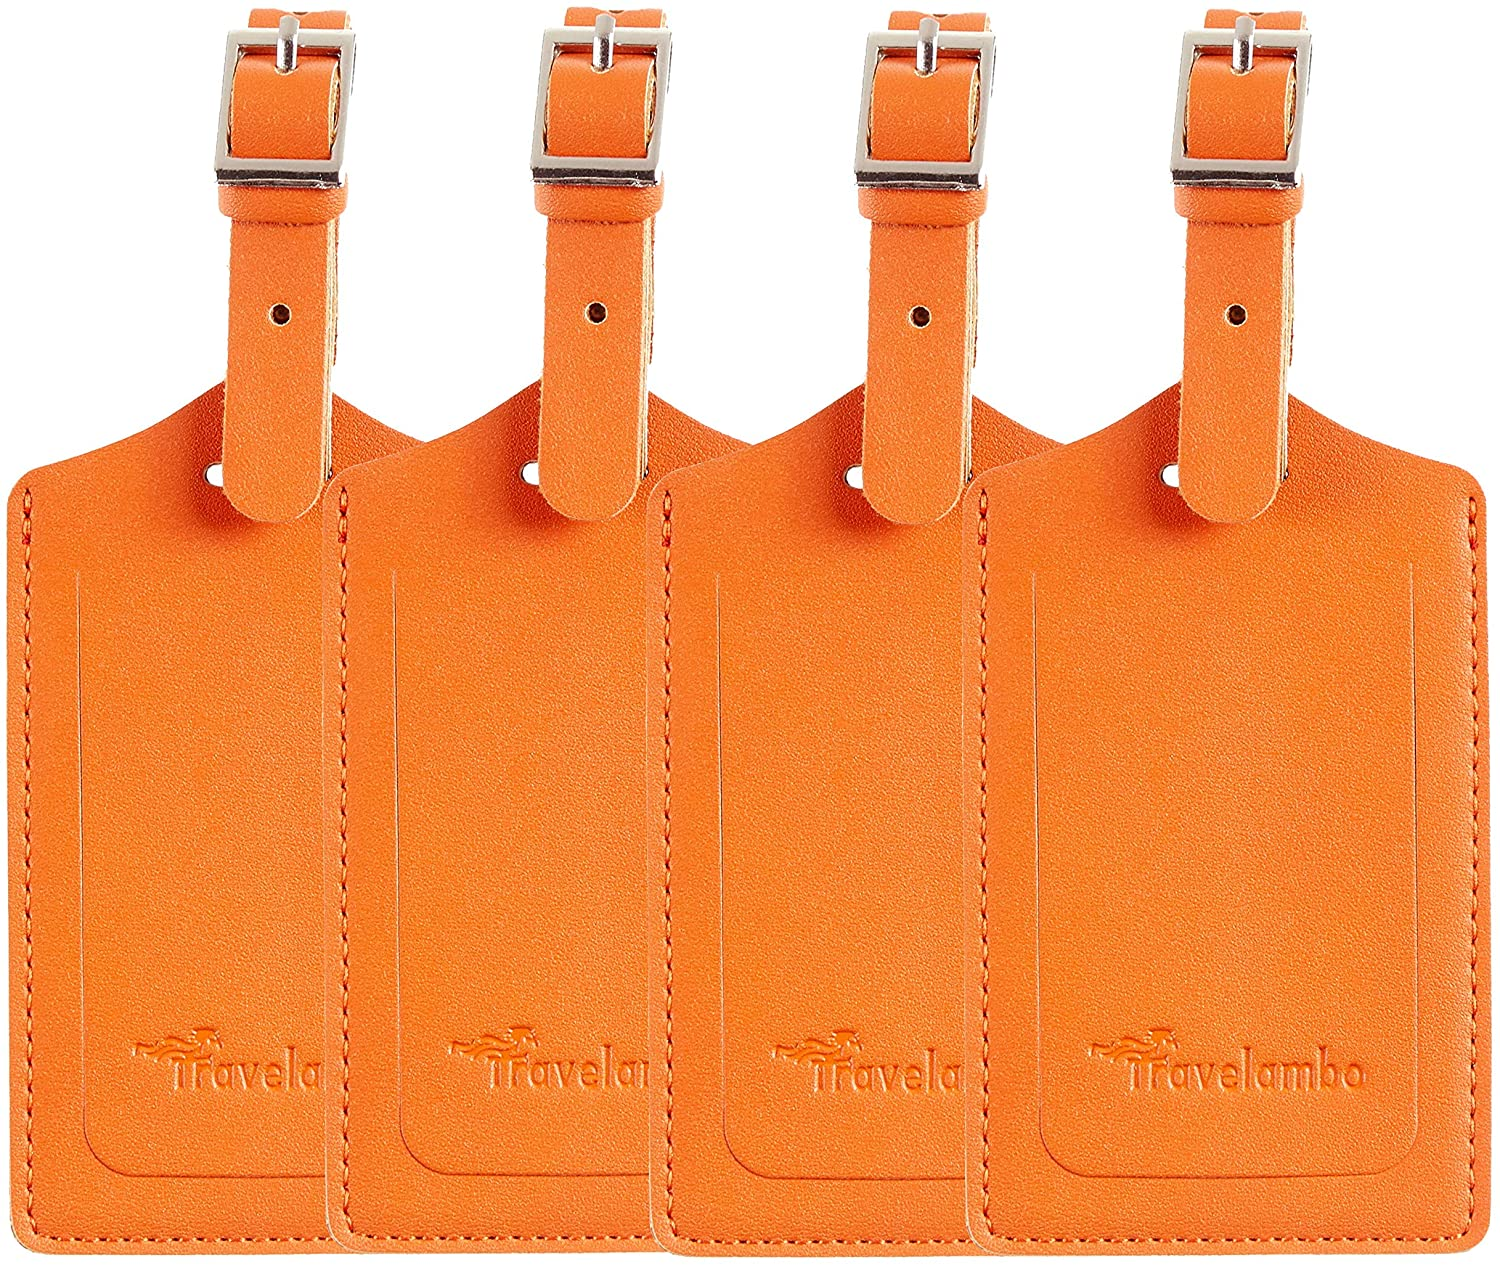 4 Pack Leather Luggage Travel Bag Tags by Travelambo Orange